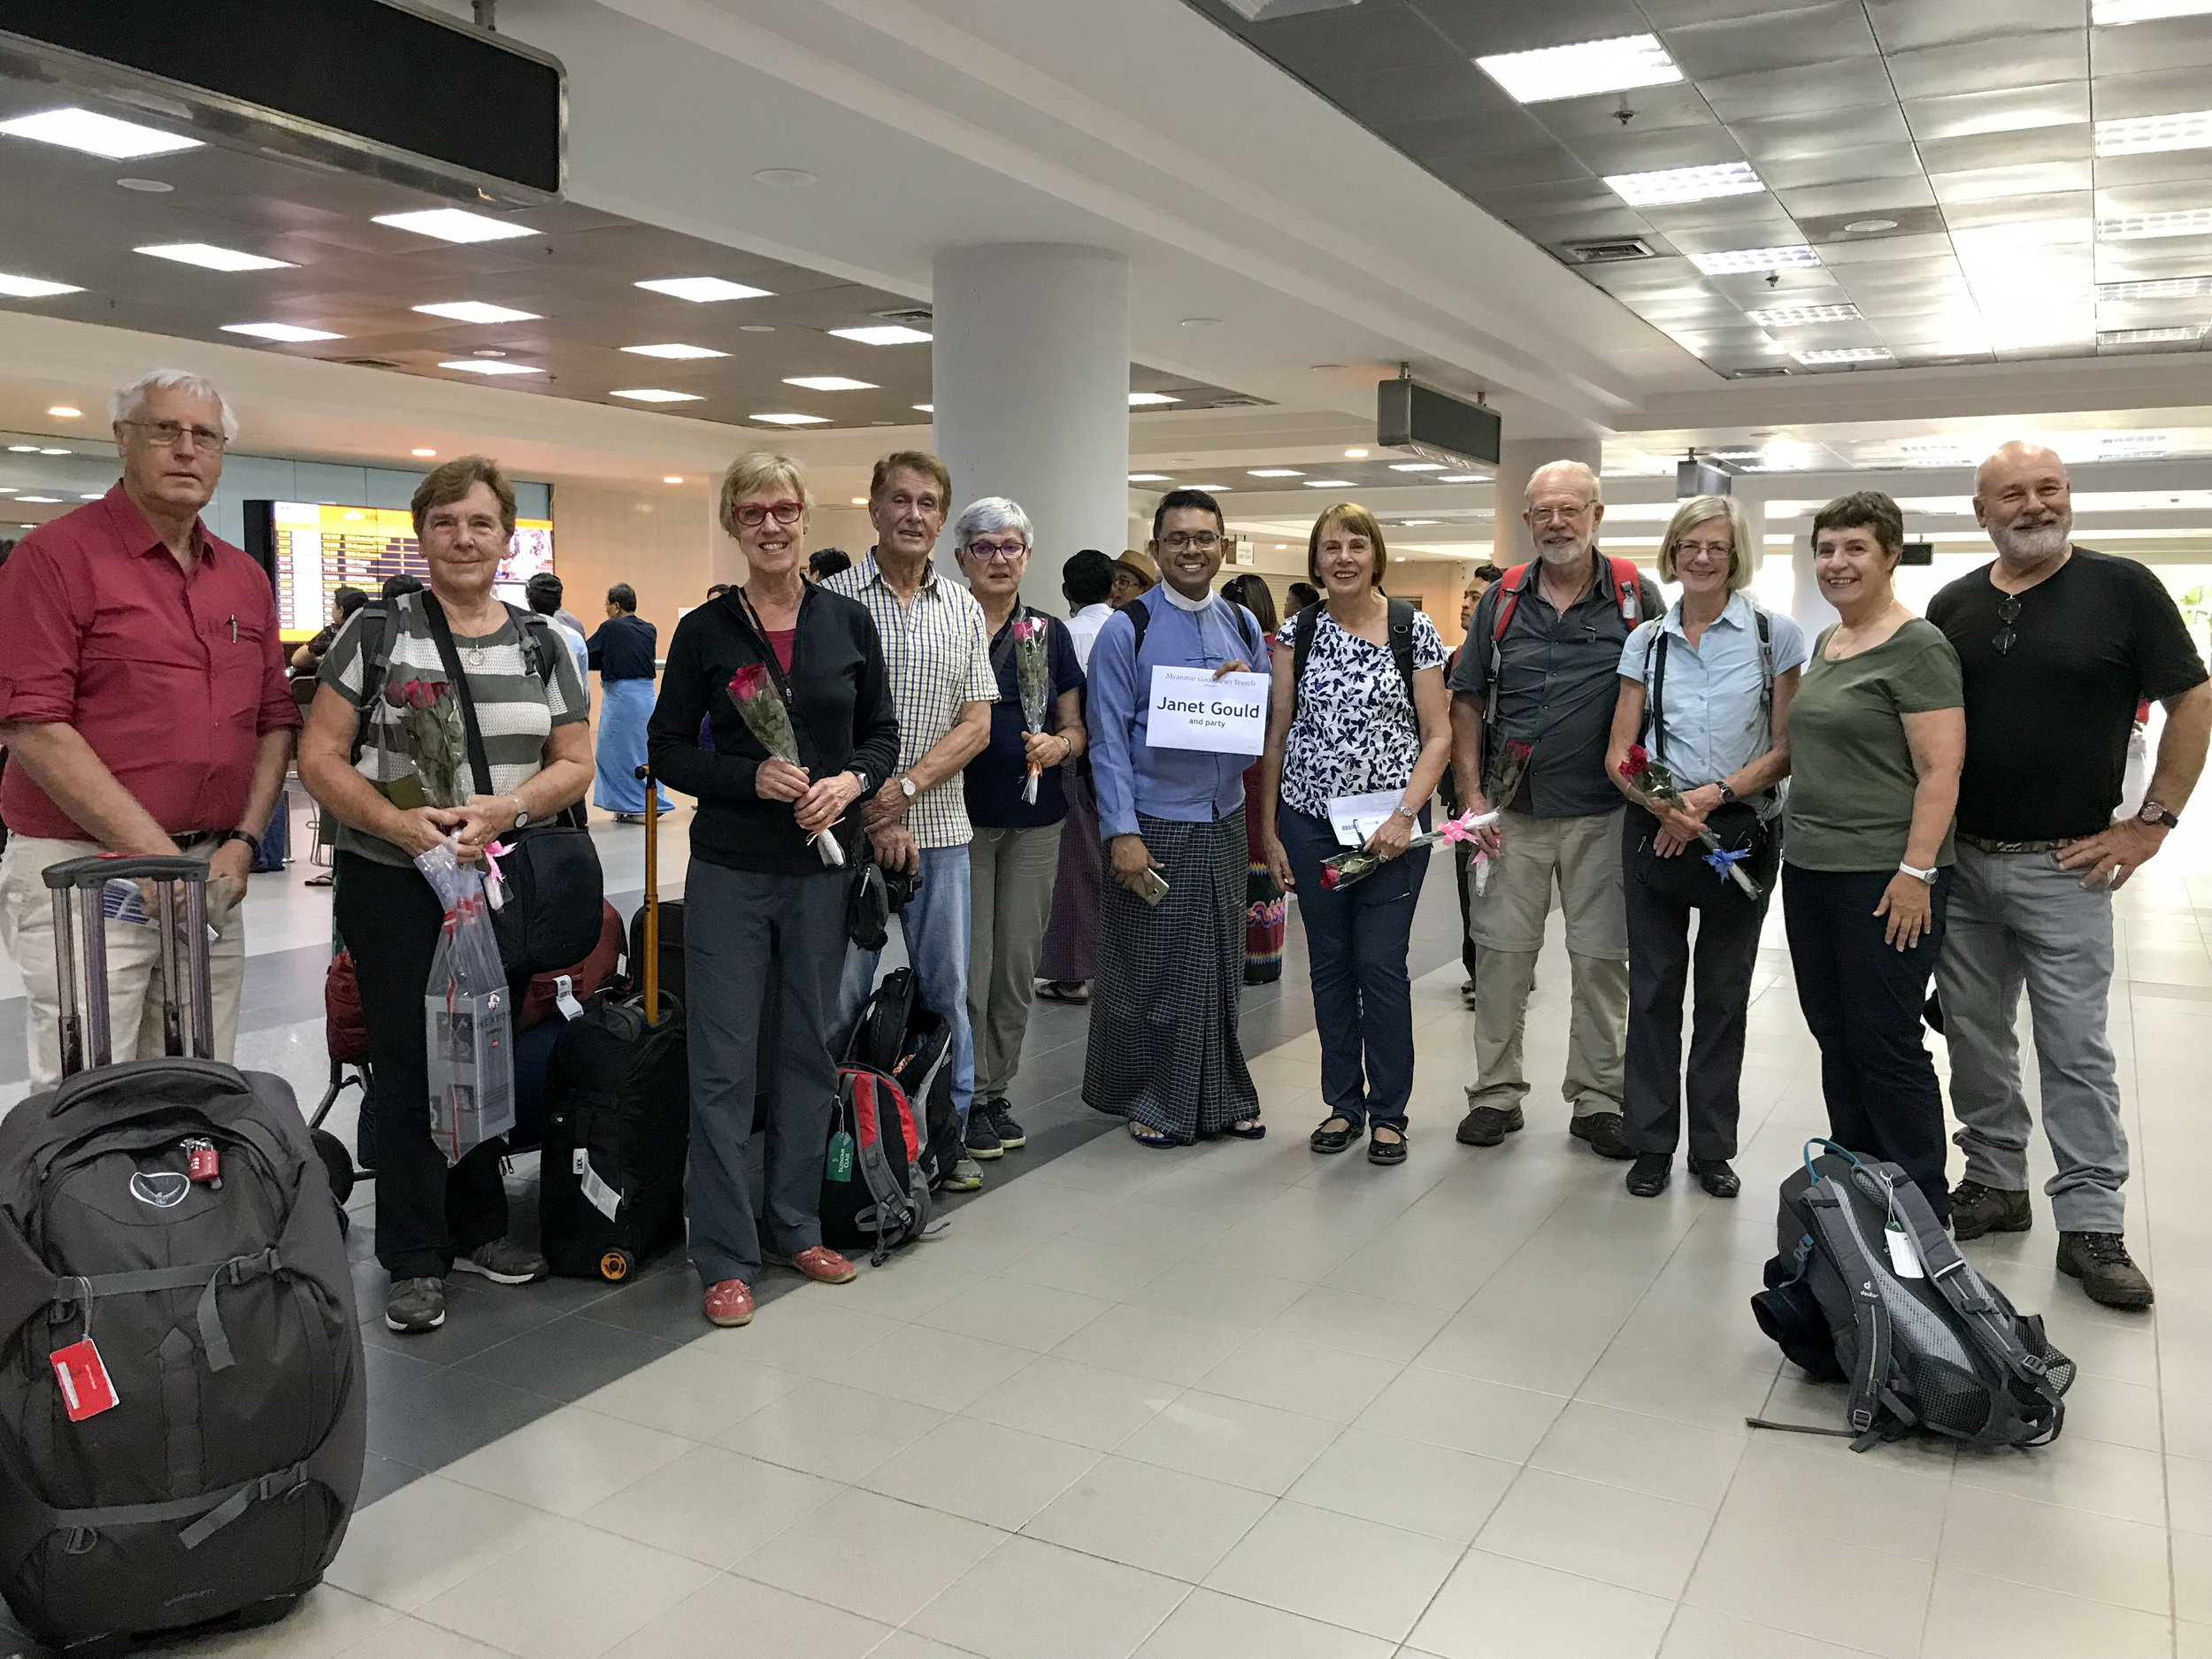 Group meeting WIllaim at airport, Mandalay, Myanmar, 15 Nov 2017.jpg